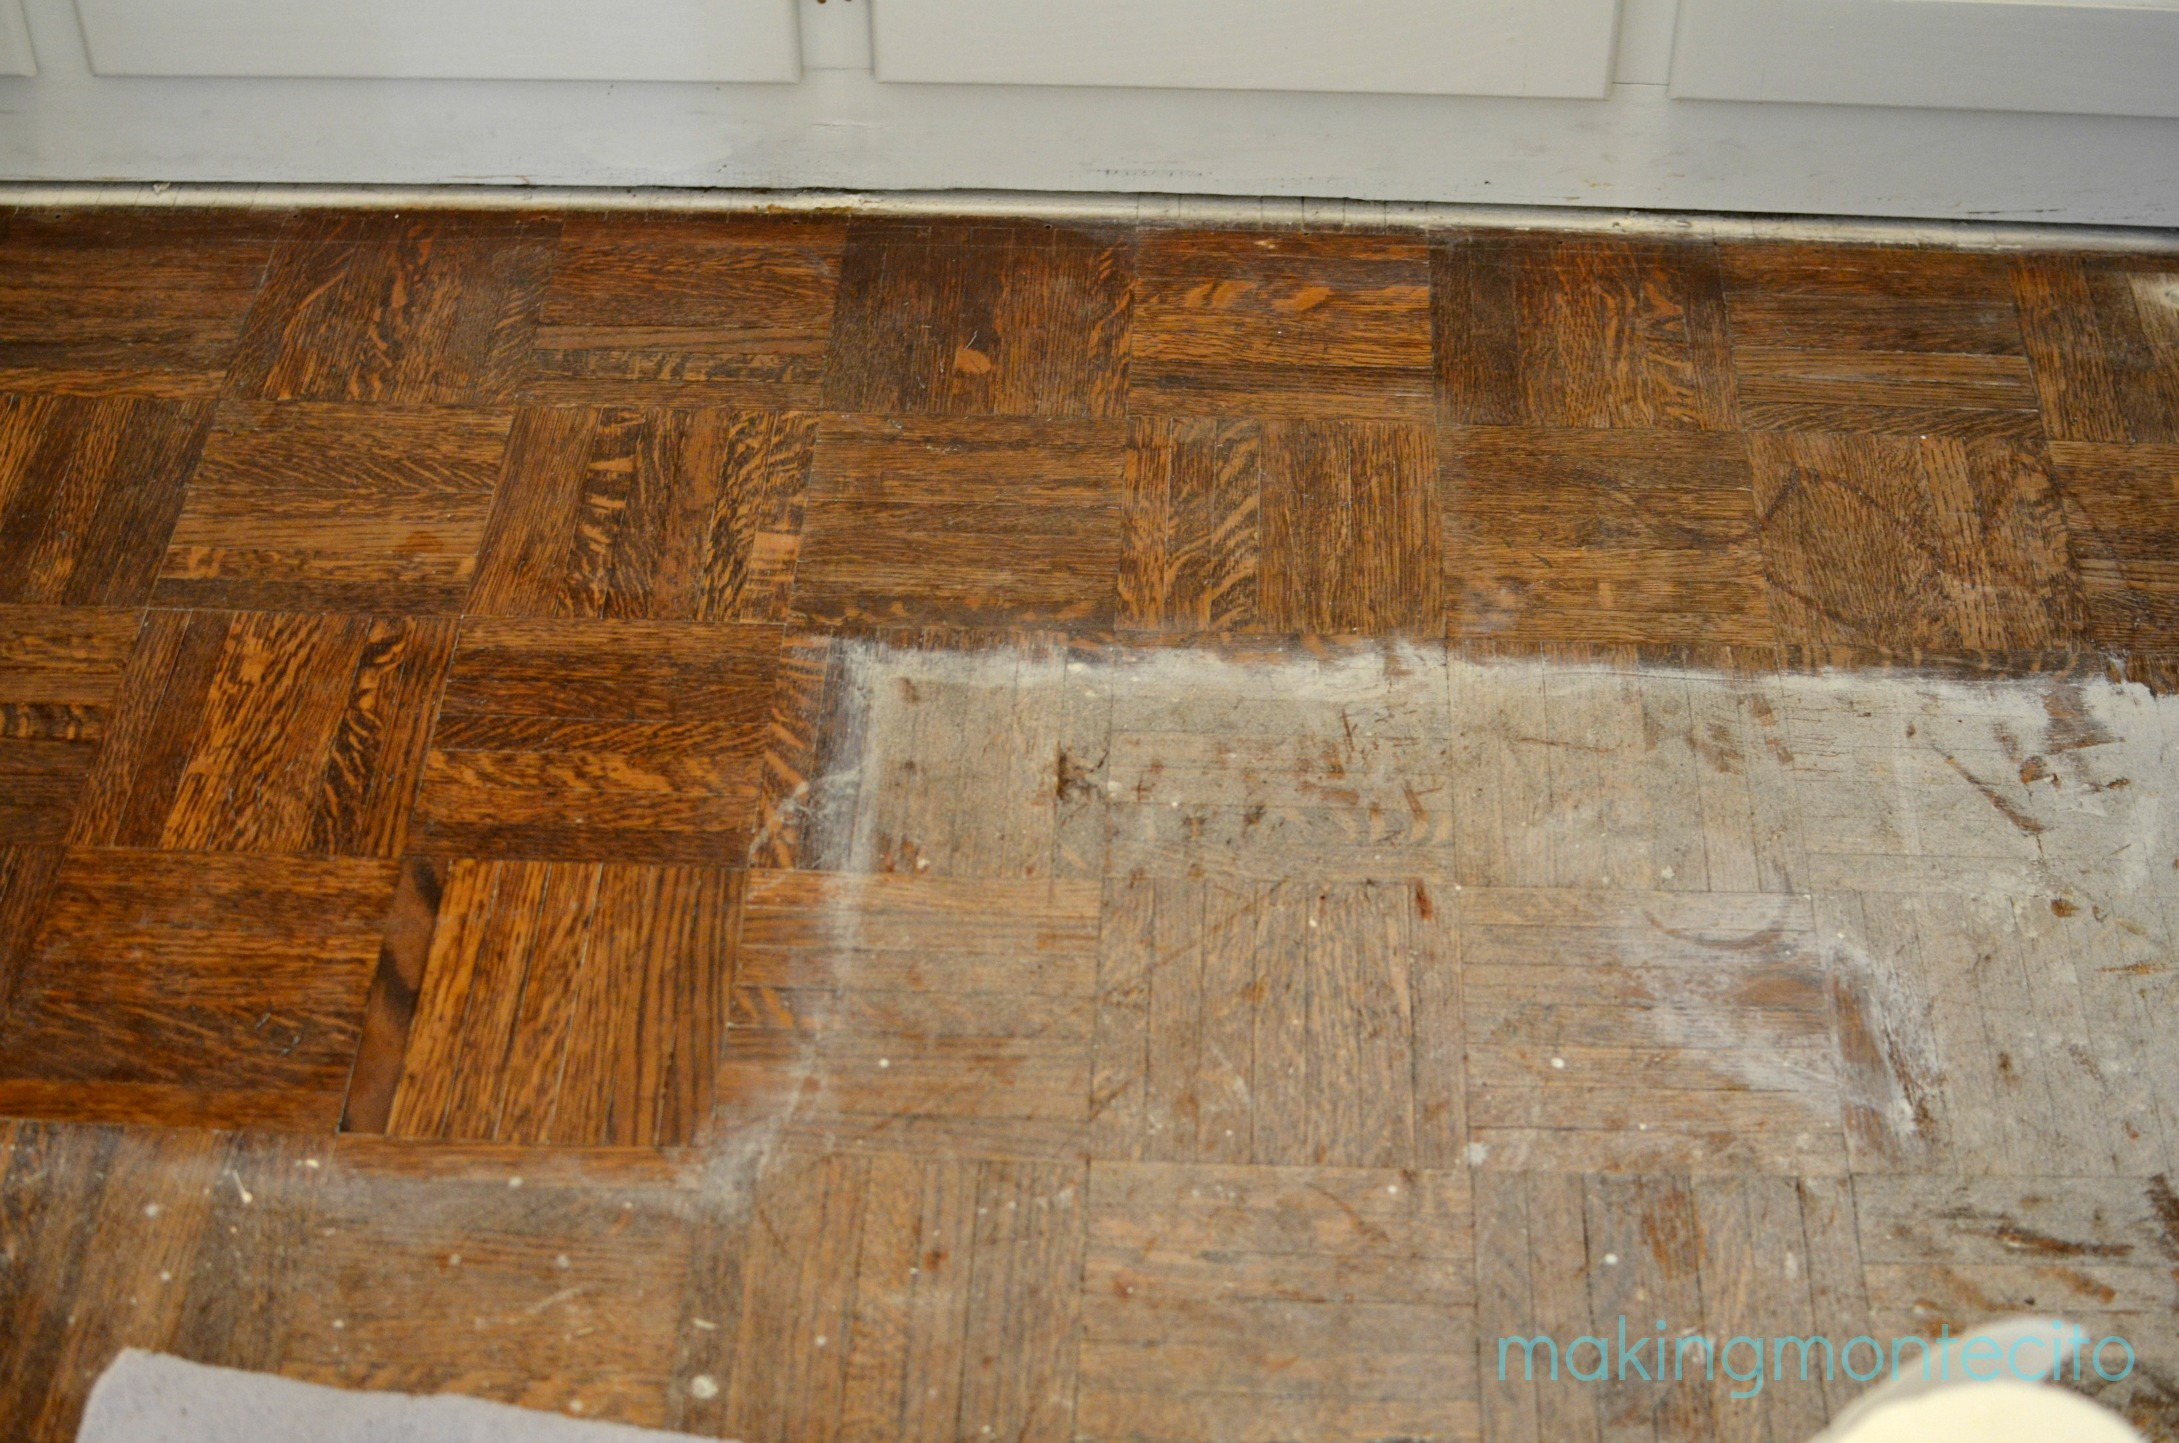 How to remove paint from hardwood floors - Making Montecito Paint Removal 2